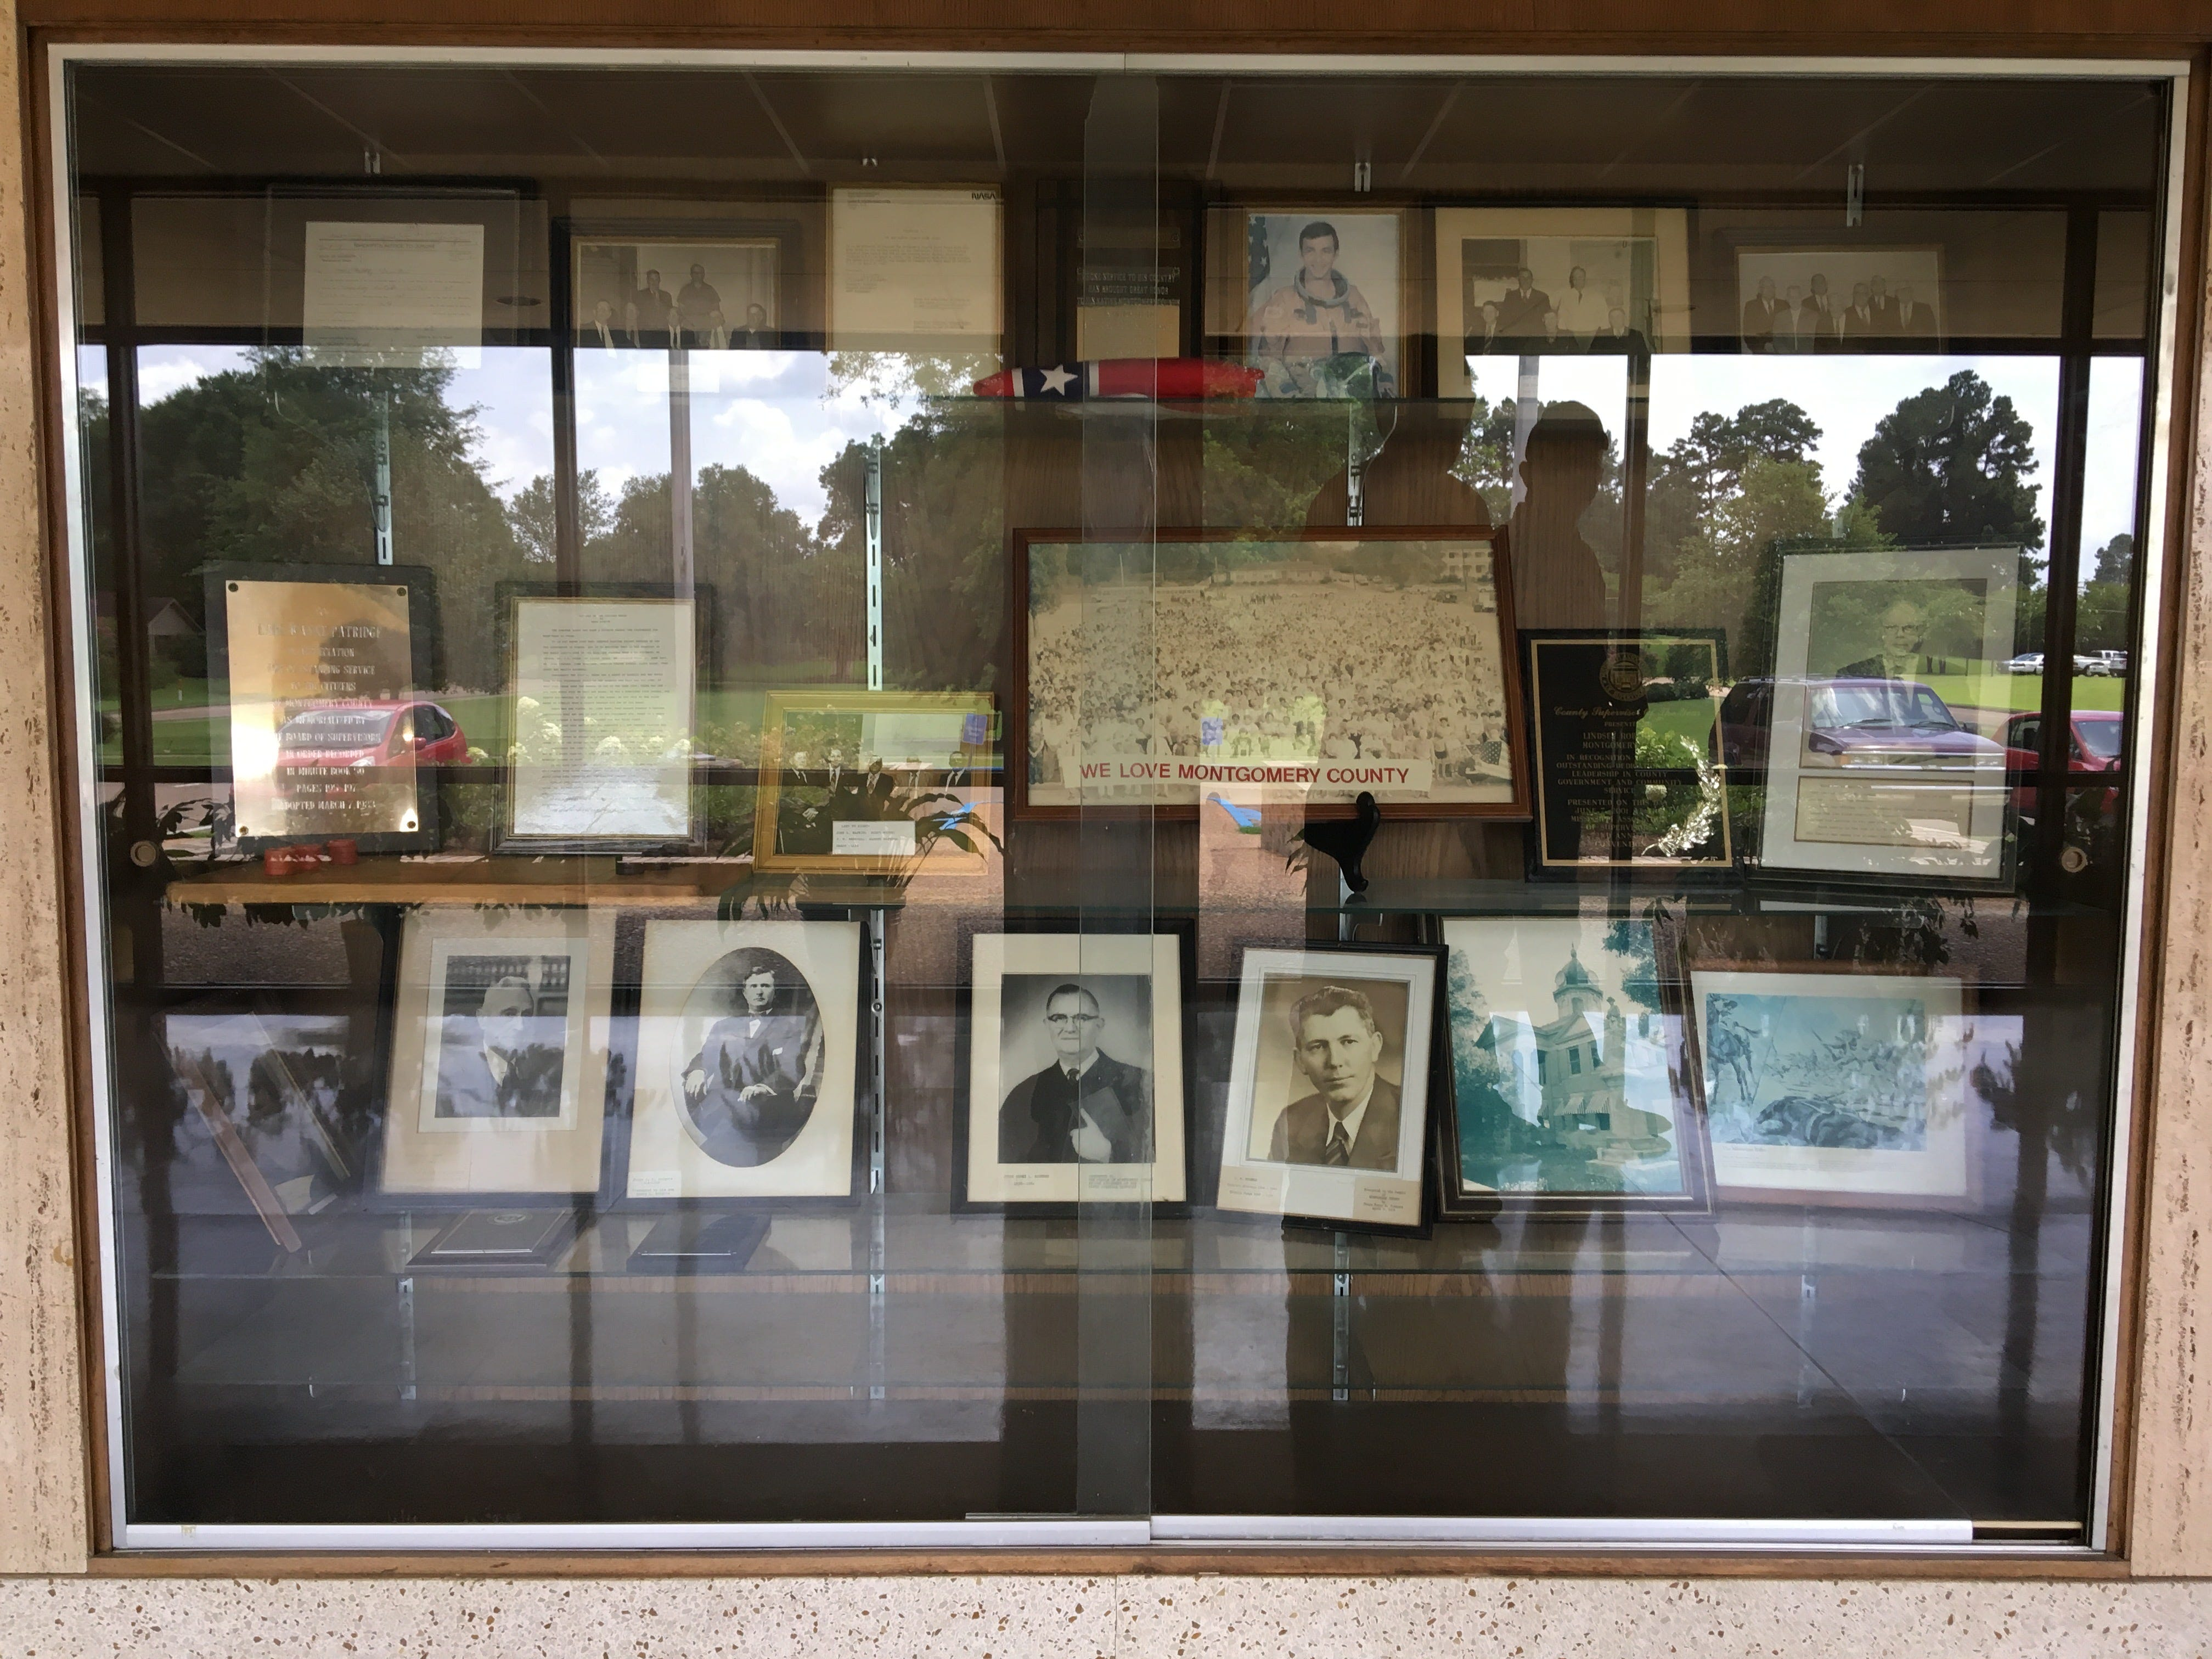 A cabinet in the lobby of the Montgomery County Courthouse displays a folded confederate flag, images and memorabilia of dignitaries from the county and Winona, MS. Thursday, July 19, 2018.